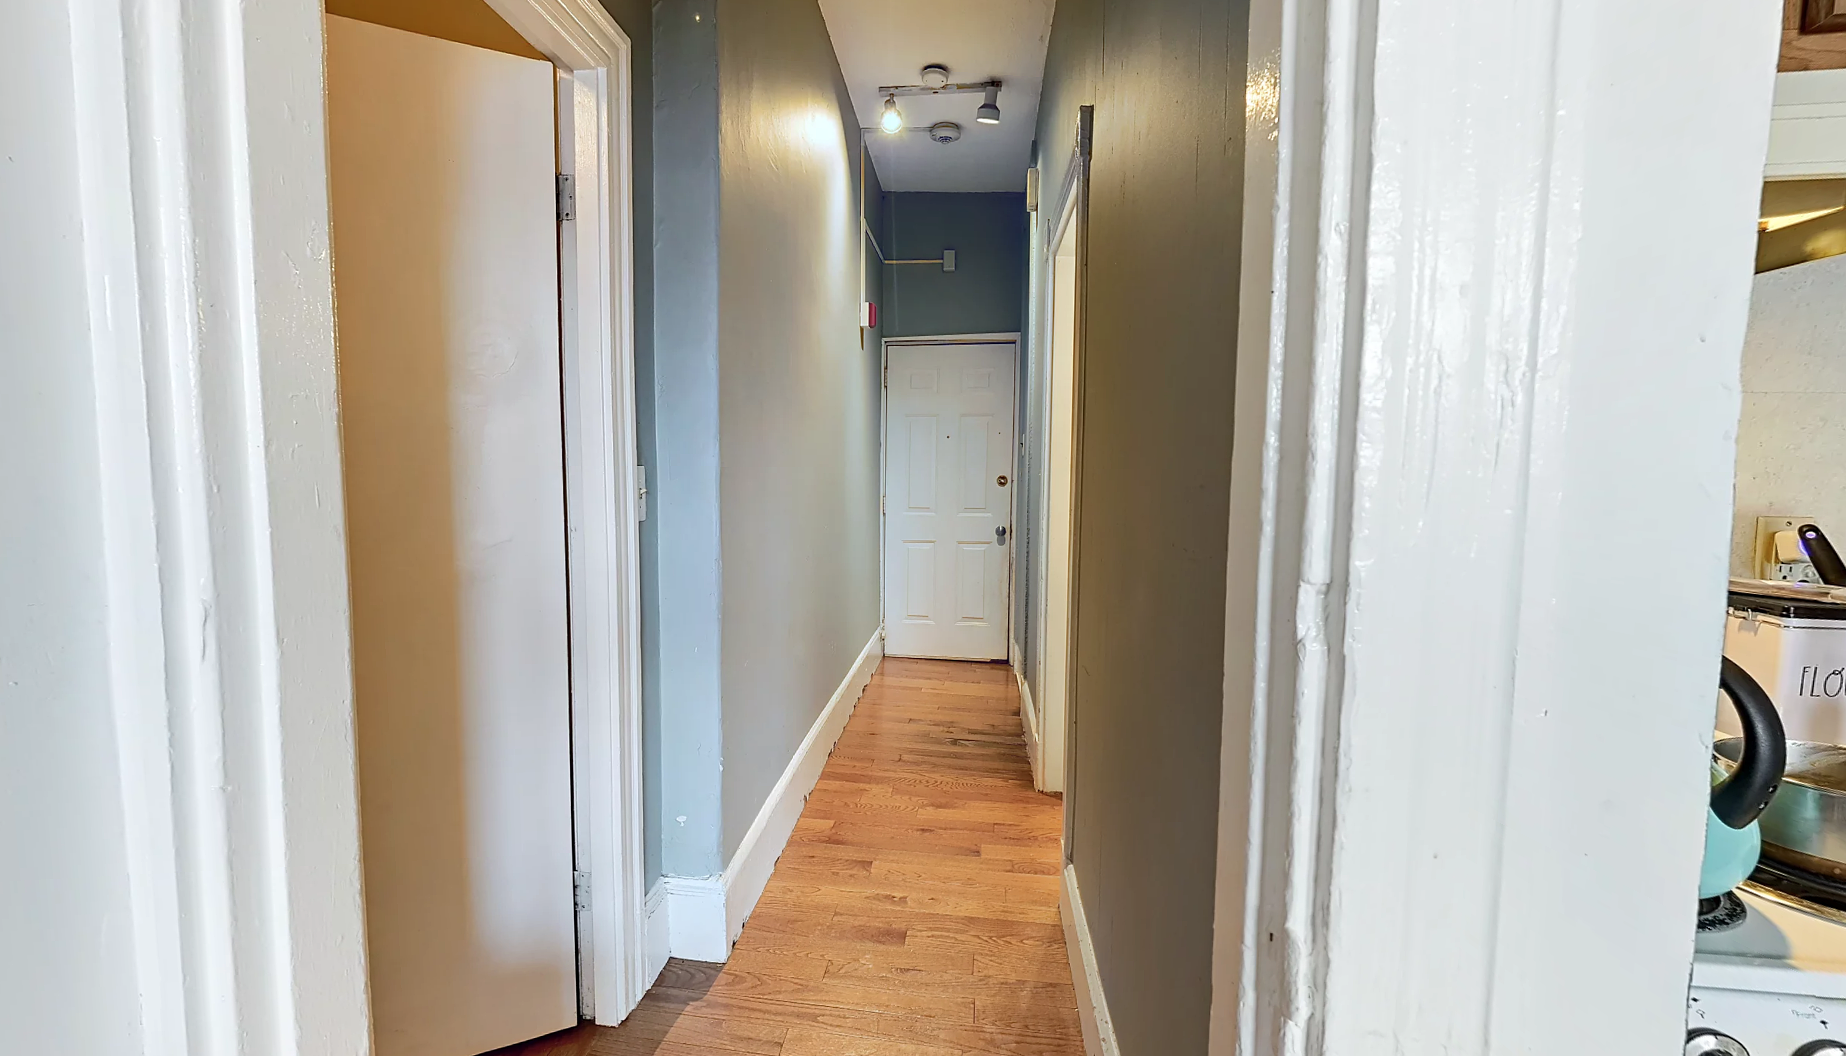 1 Bed, 1 Bath apartment in Boston for $1,750